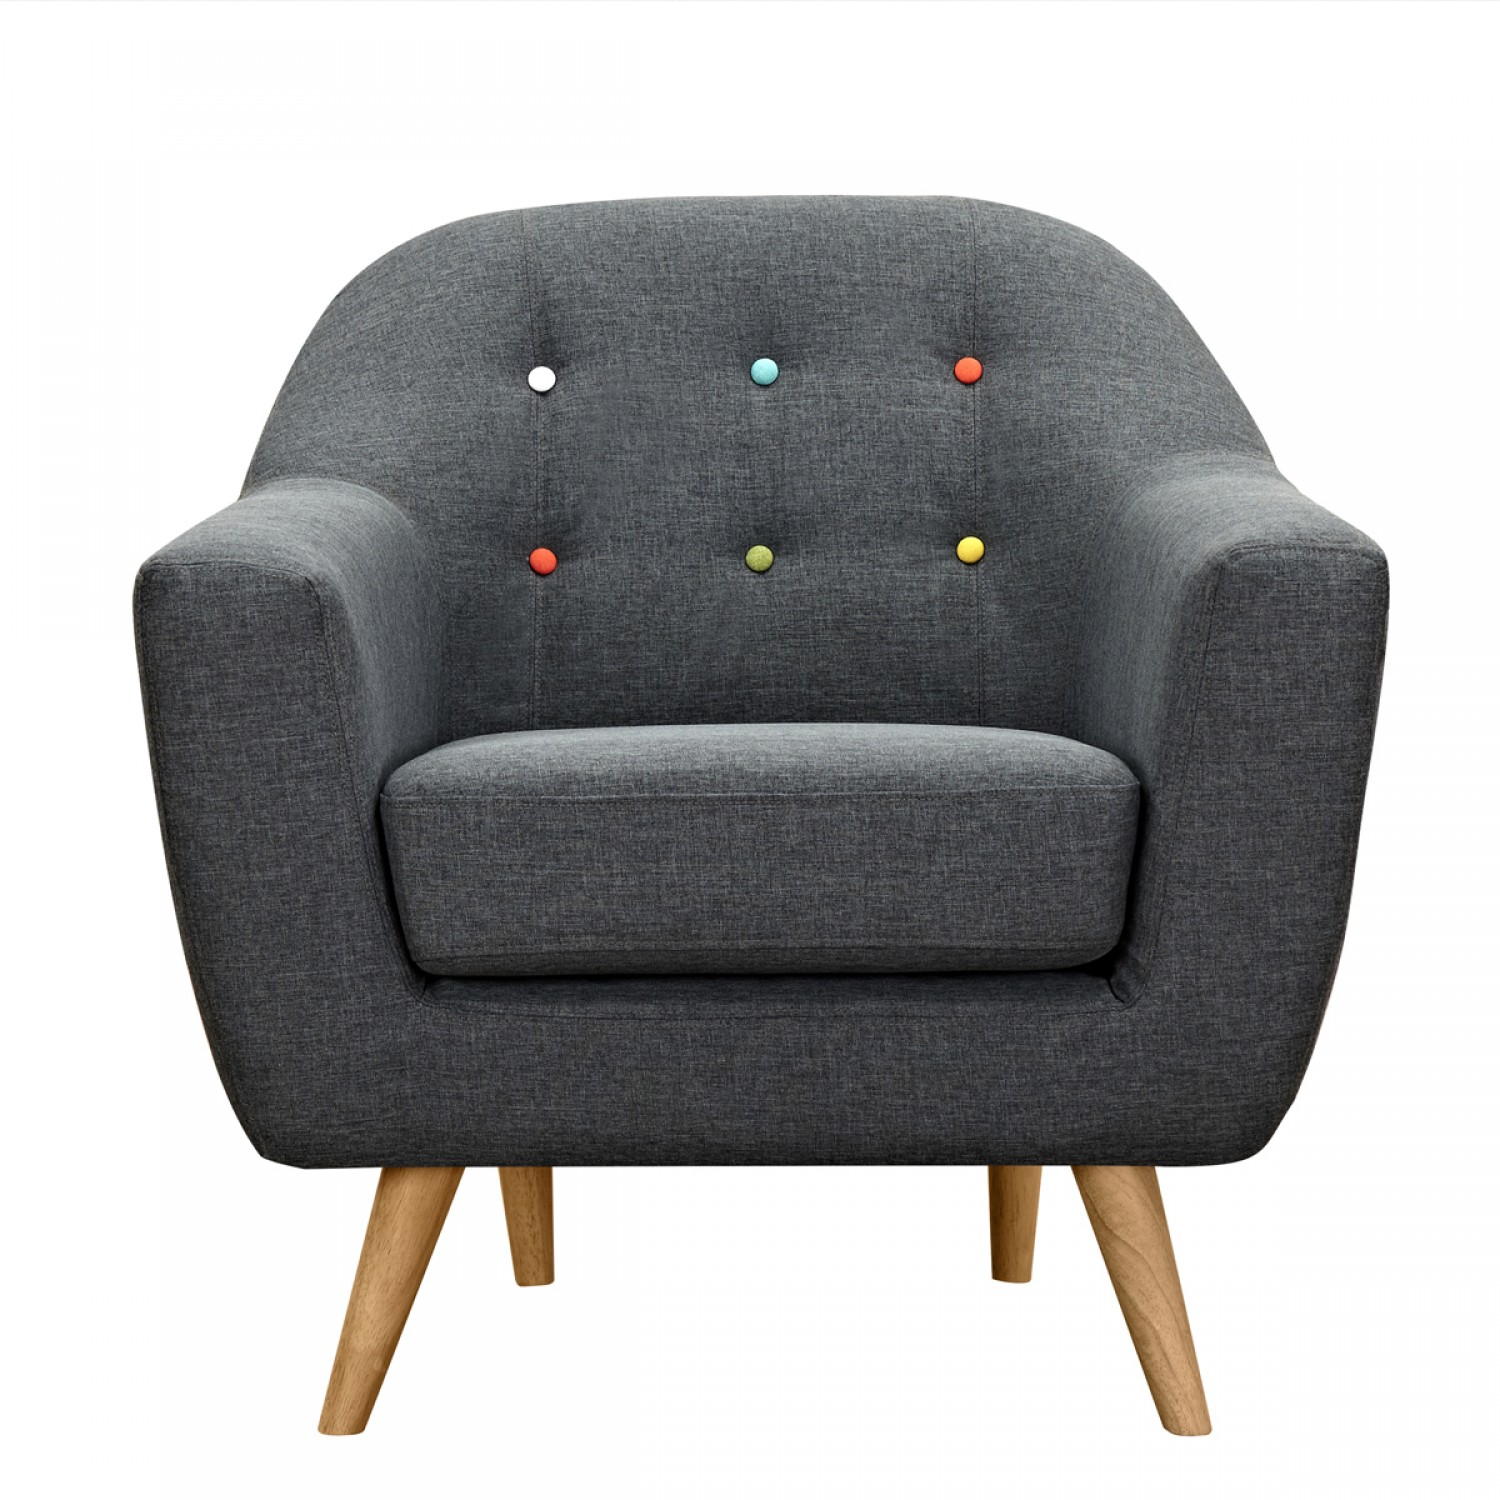 fauteuil vejen gris fonc boutons multicolores koya design. Black Bedroom Furniture Sets. Home Design Ideas